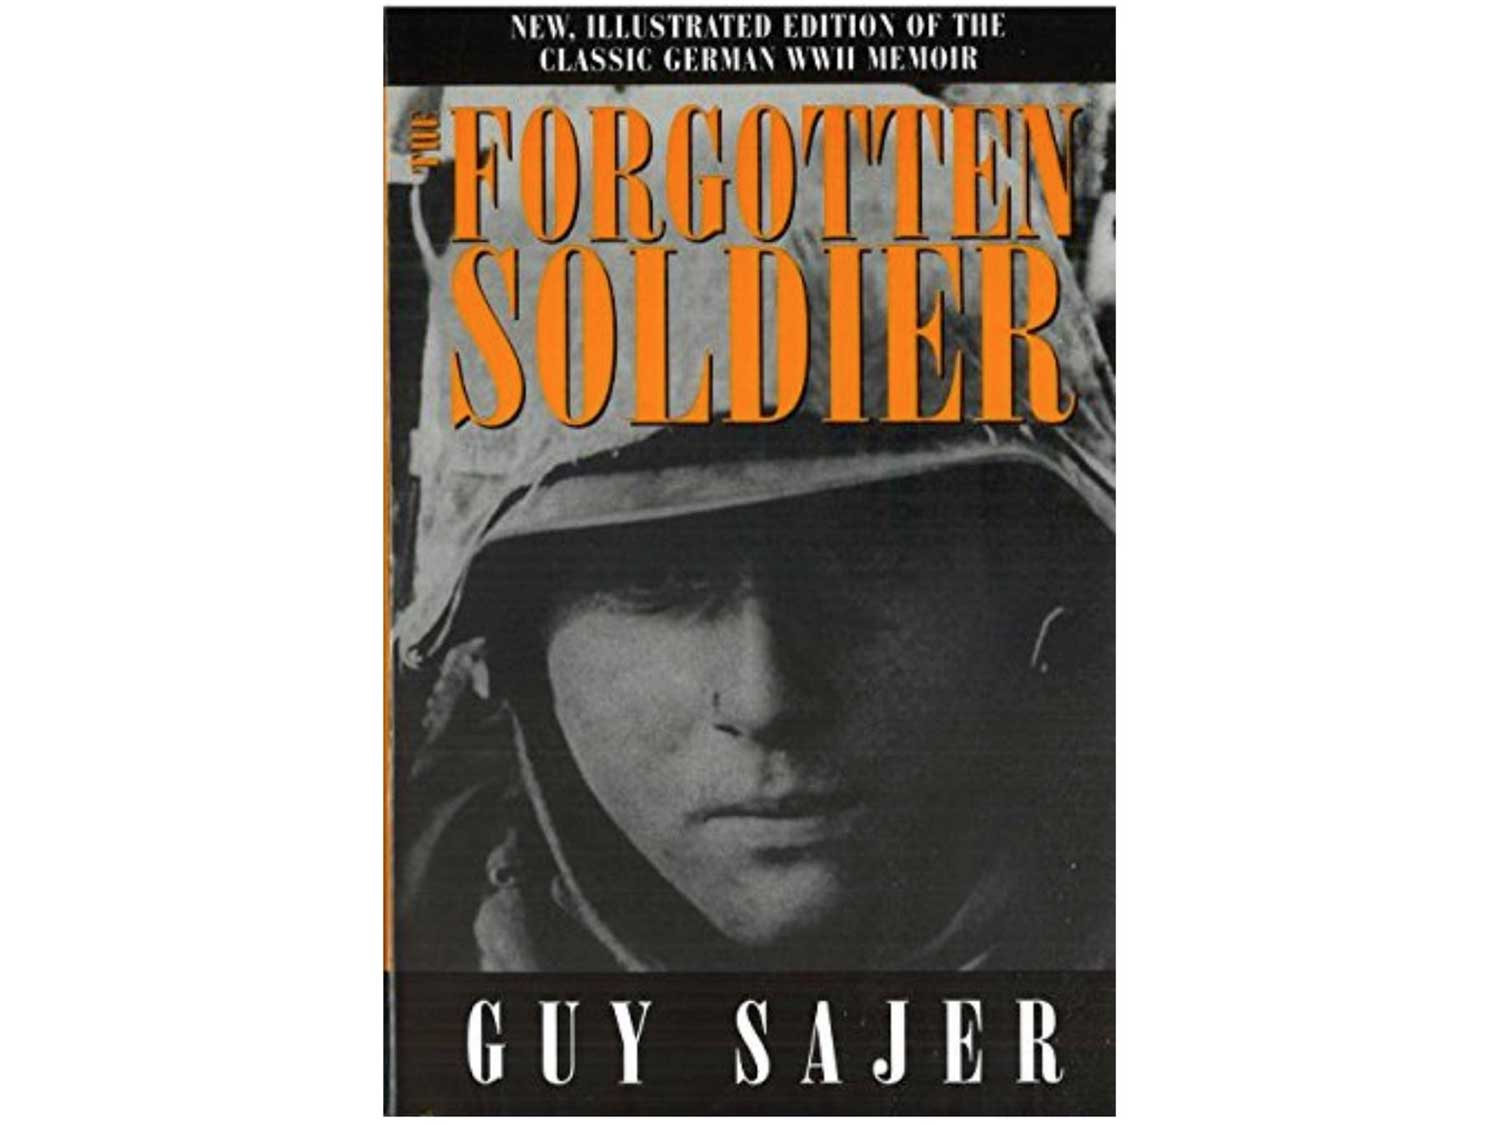 The Forgotten Soldier, by Guy Sajer